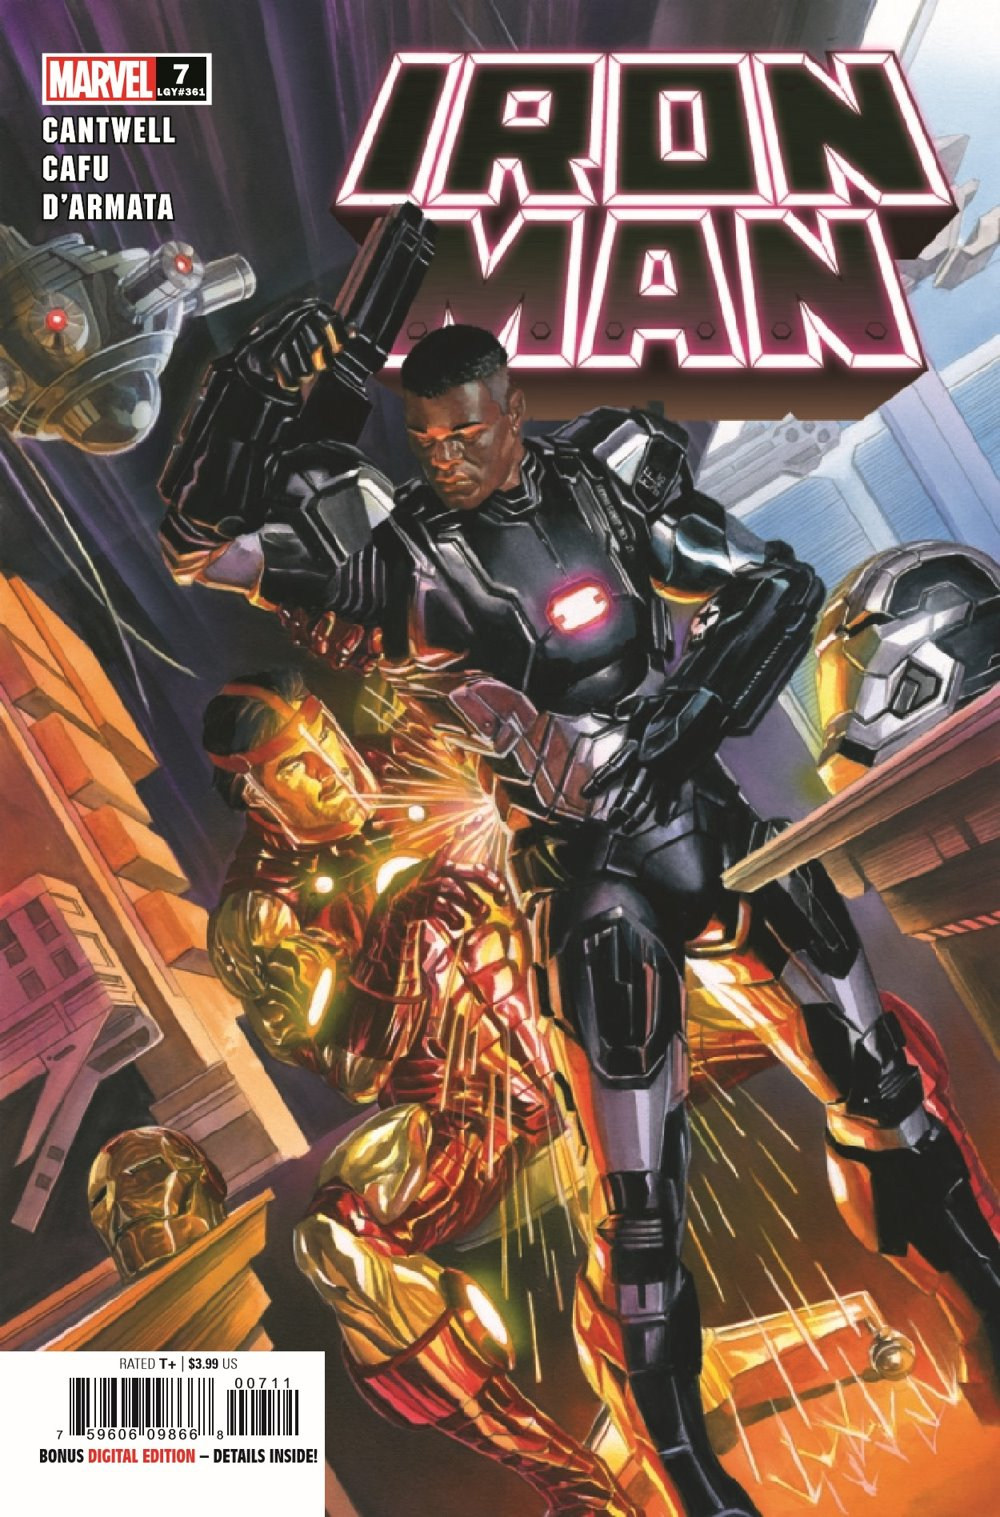 IM2020007_Preview-1 ComicList Previews: IRON MAN #7